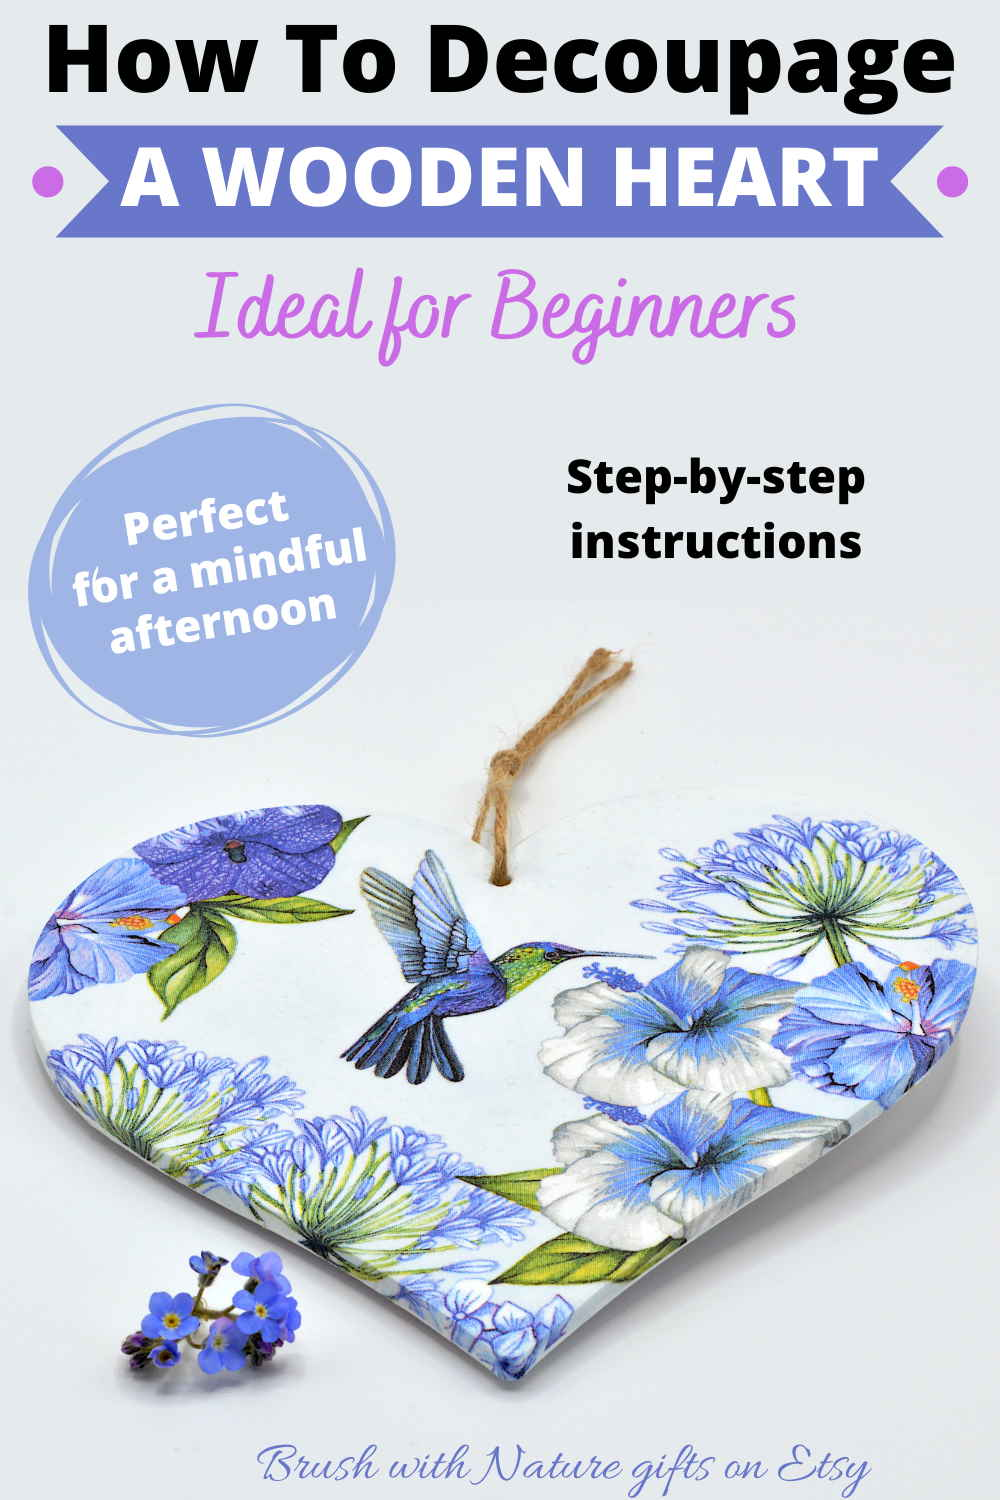 How to decoupage a wooden heart with step-by-step instructions